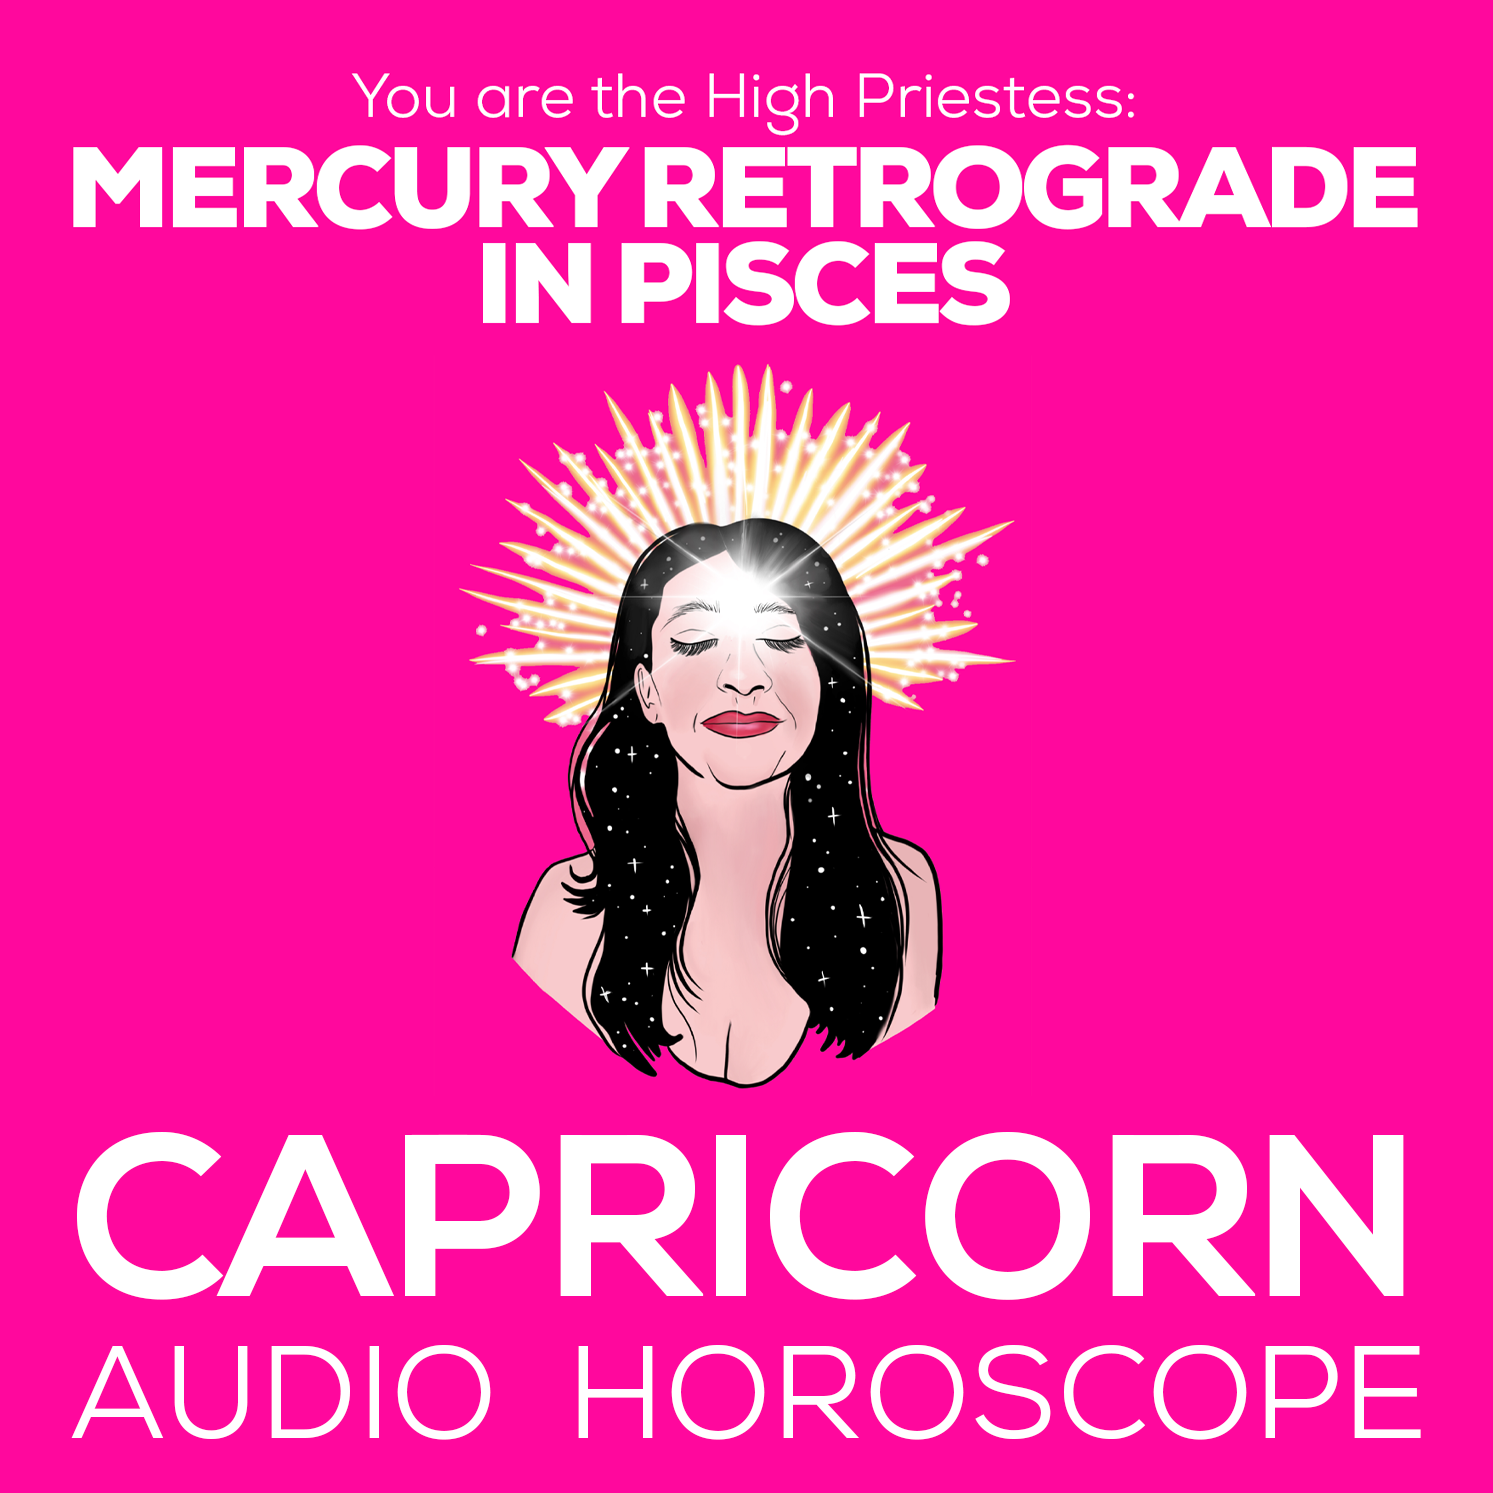 Audio Horoscope - Capricorn